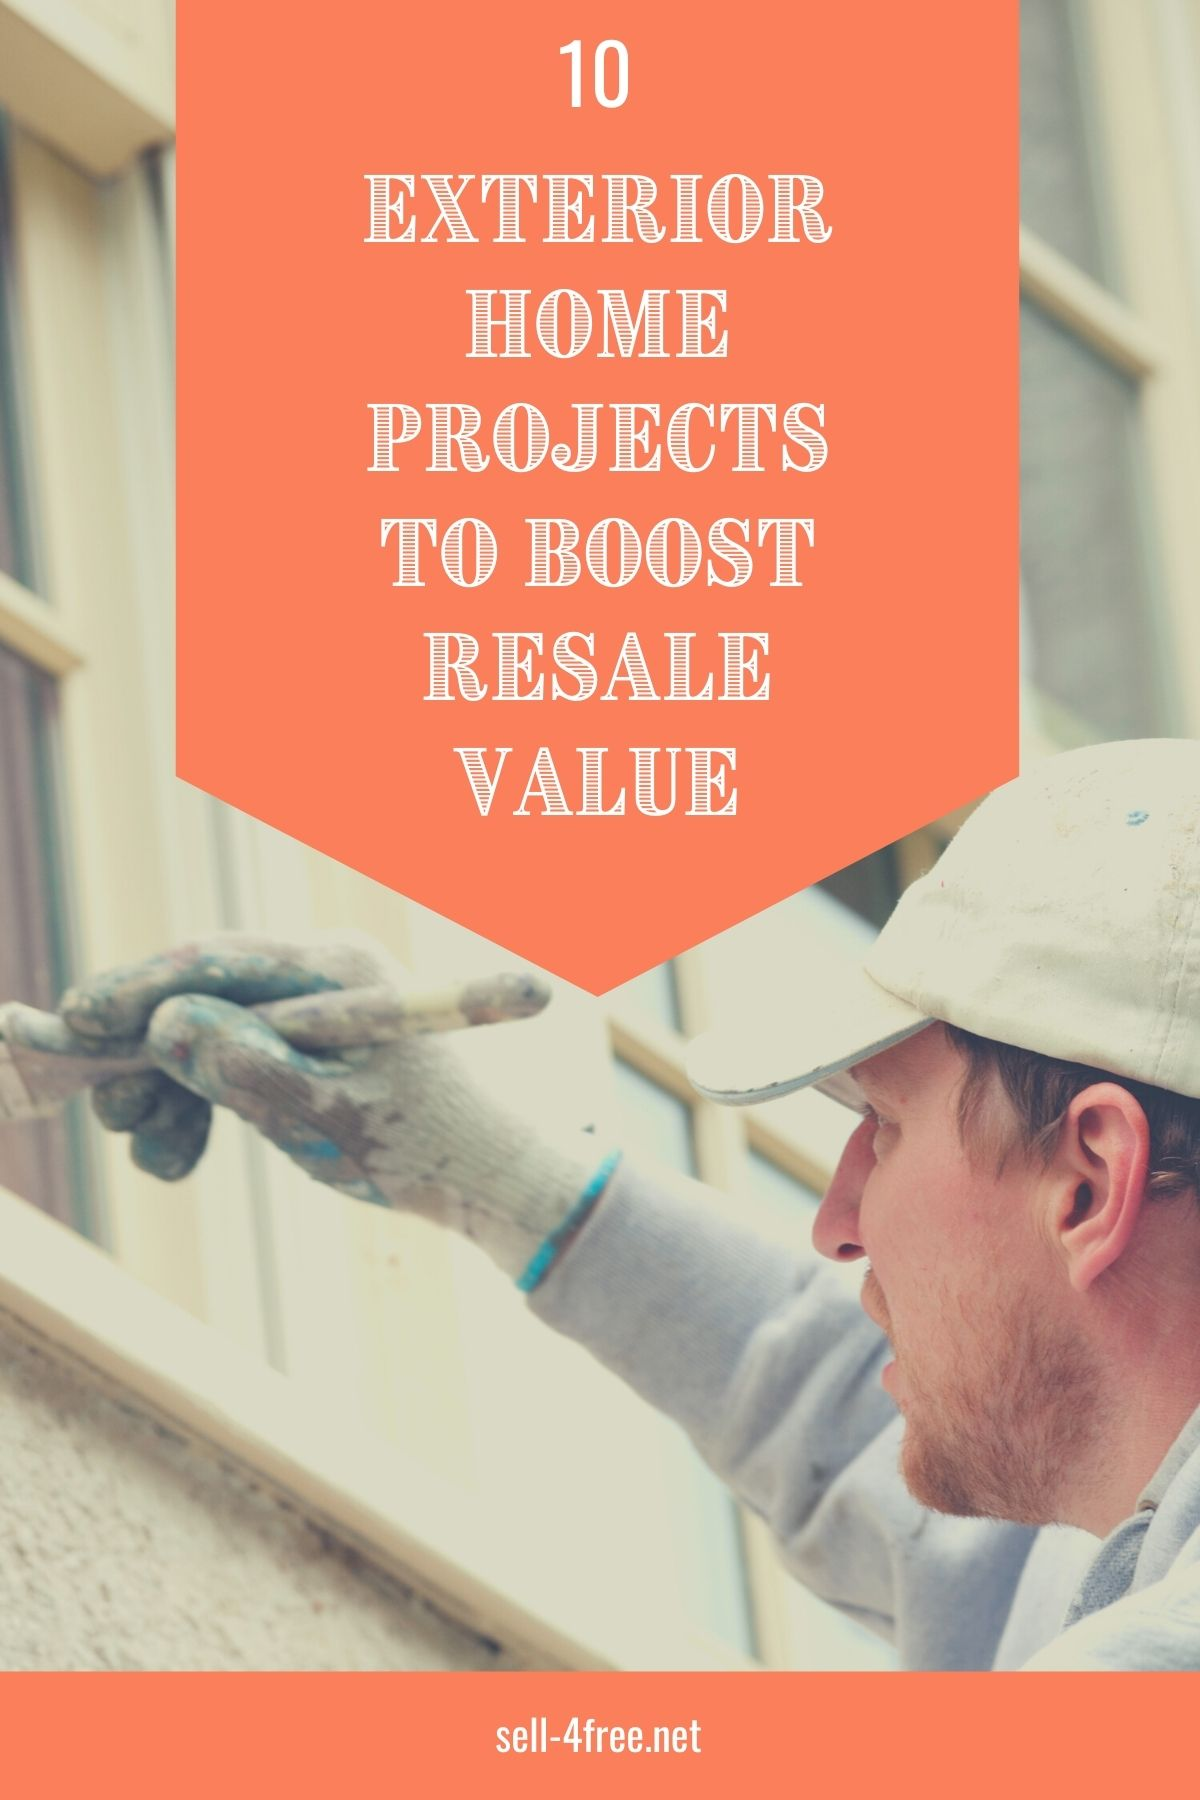 5 Exterior Home Projects to Boost Resale Value